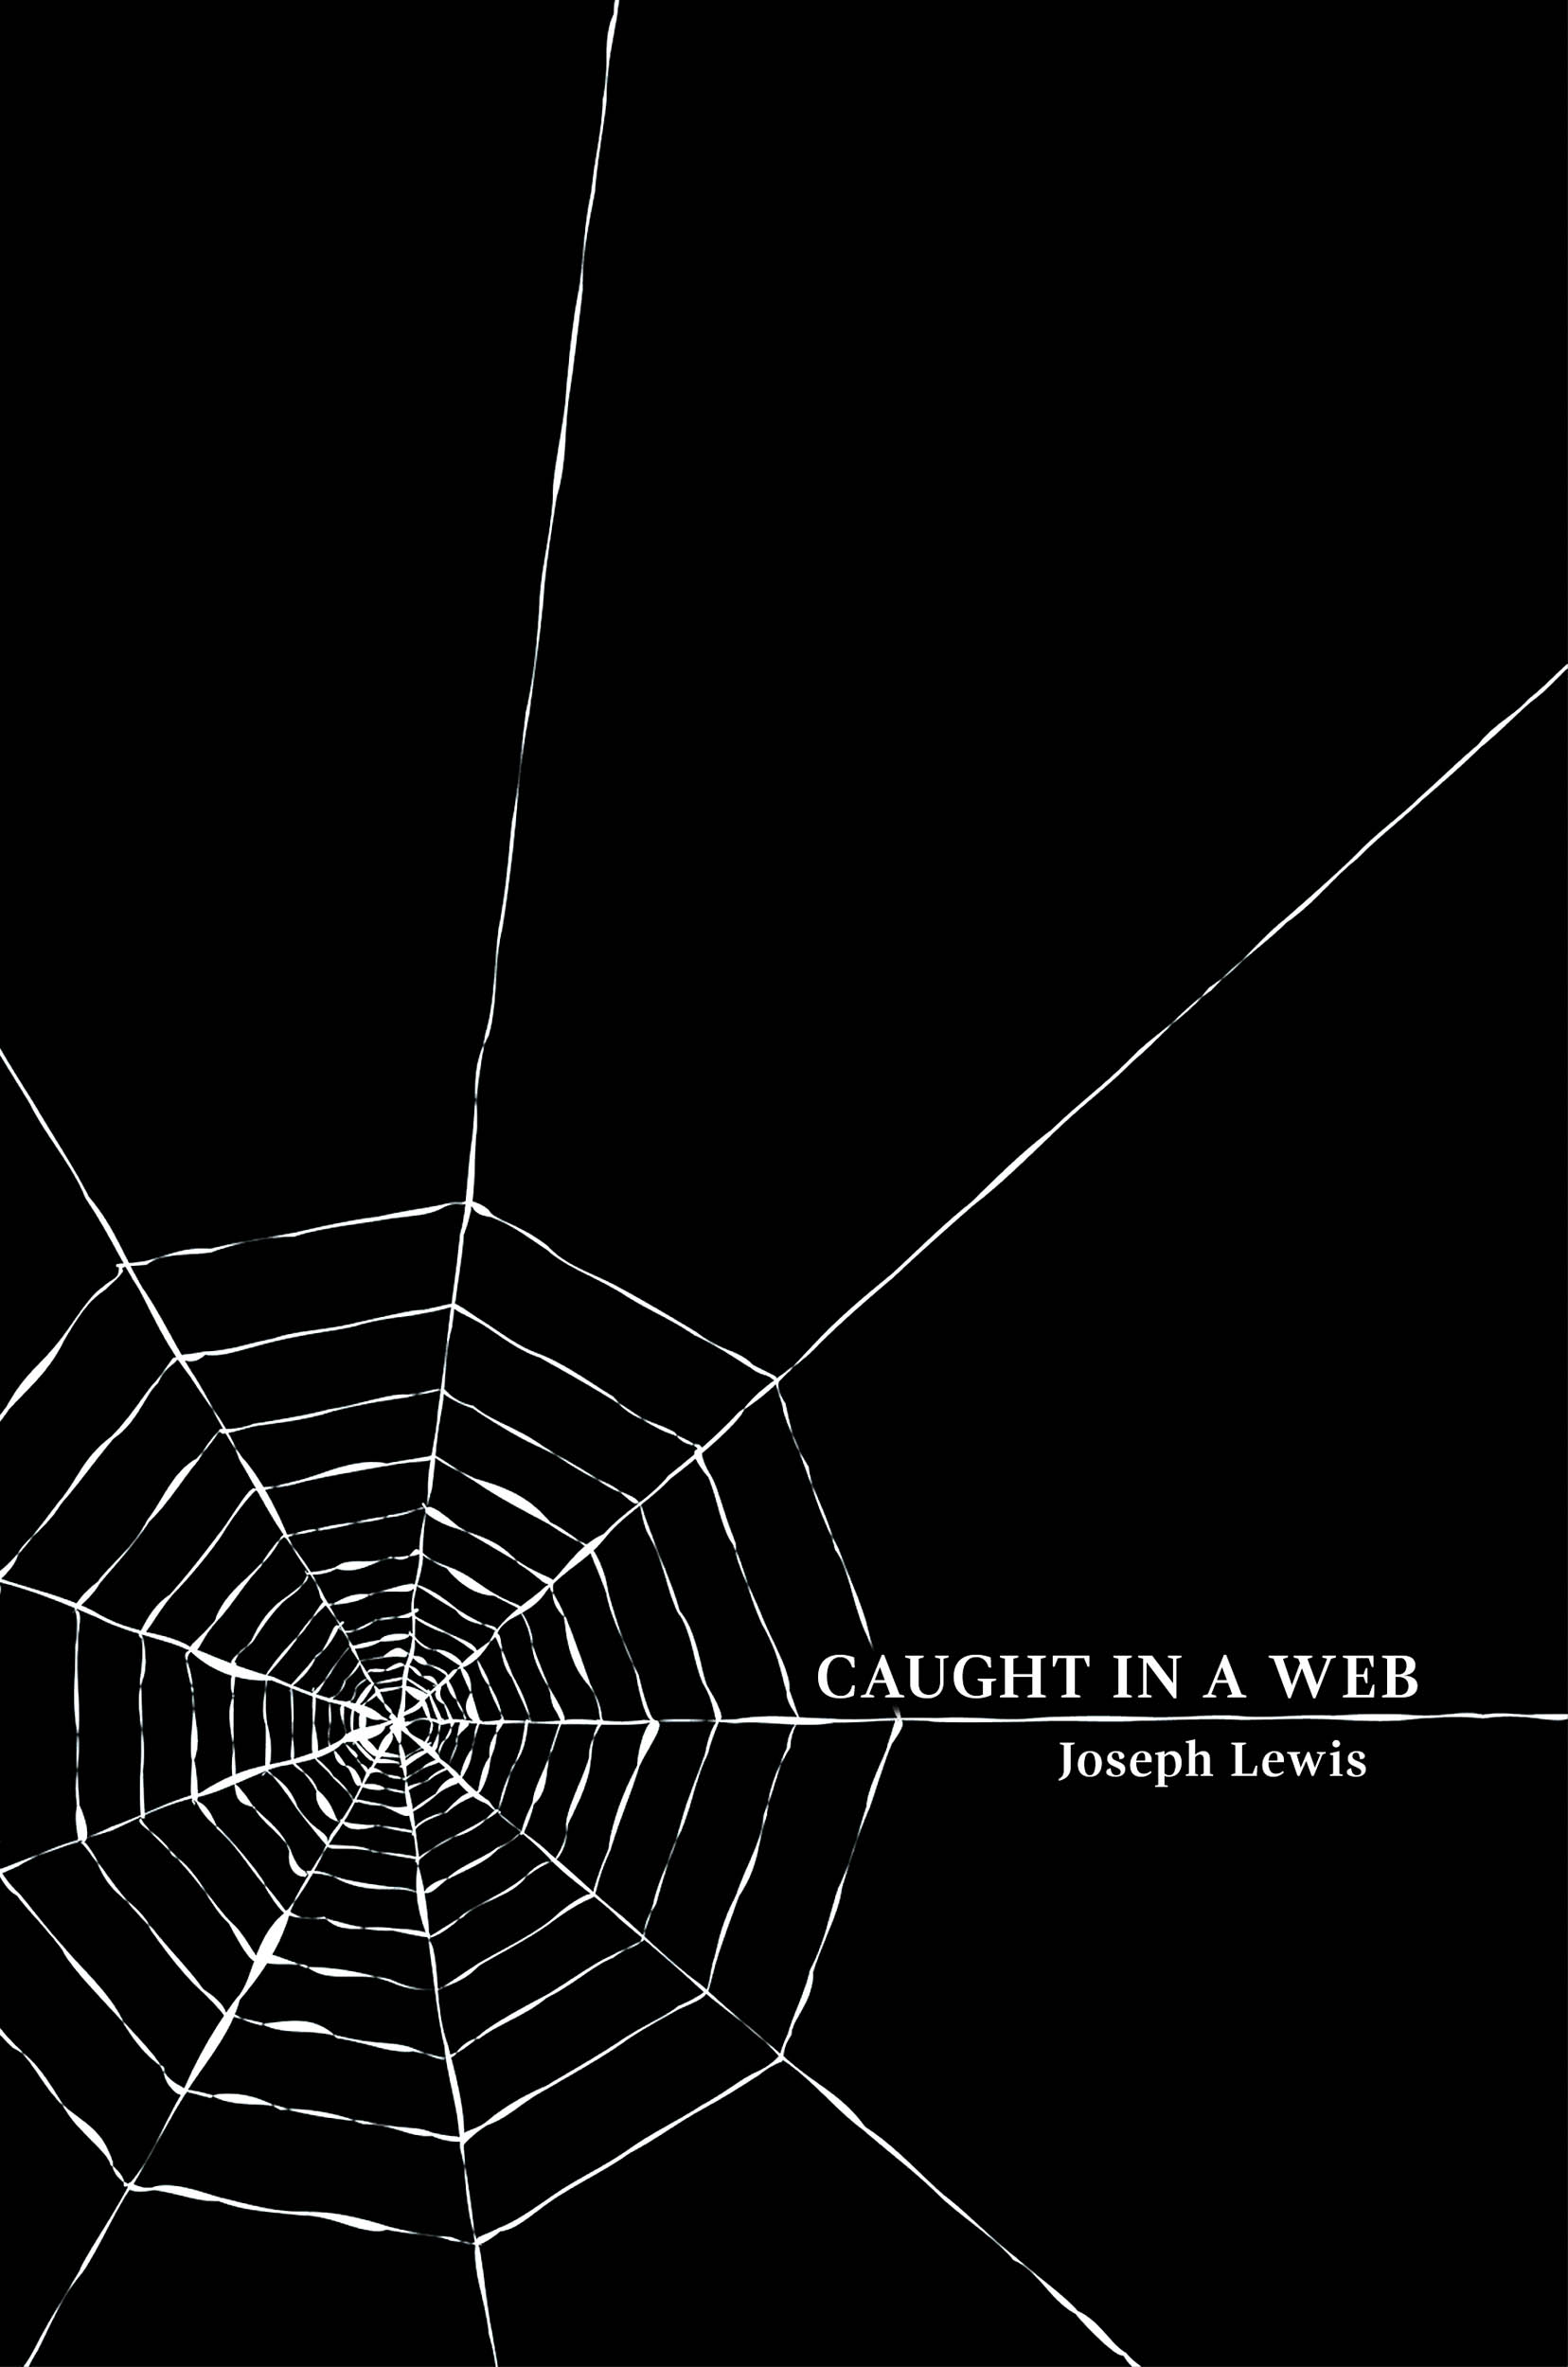 Caught In A Web eimage.jpg